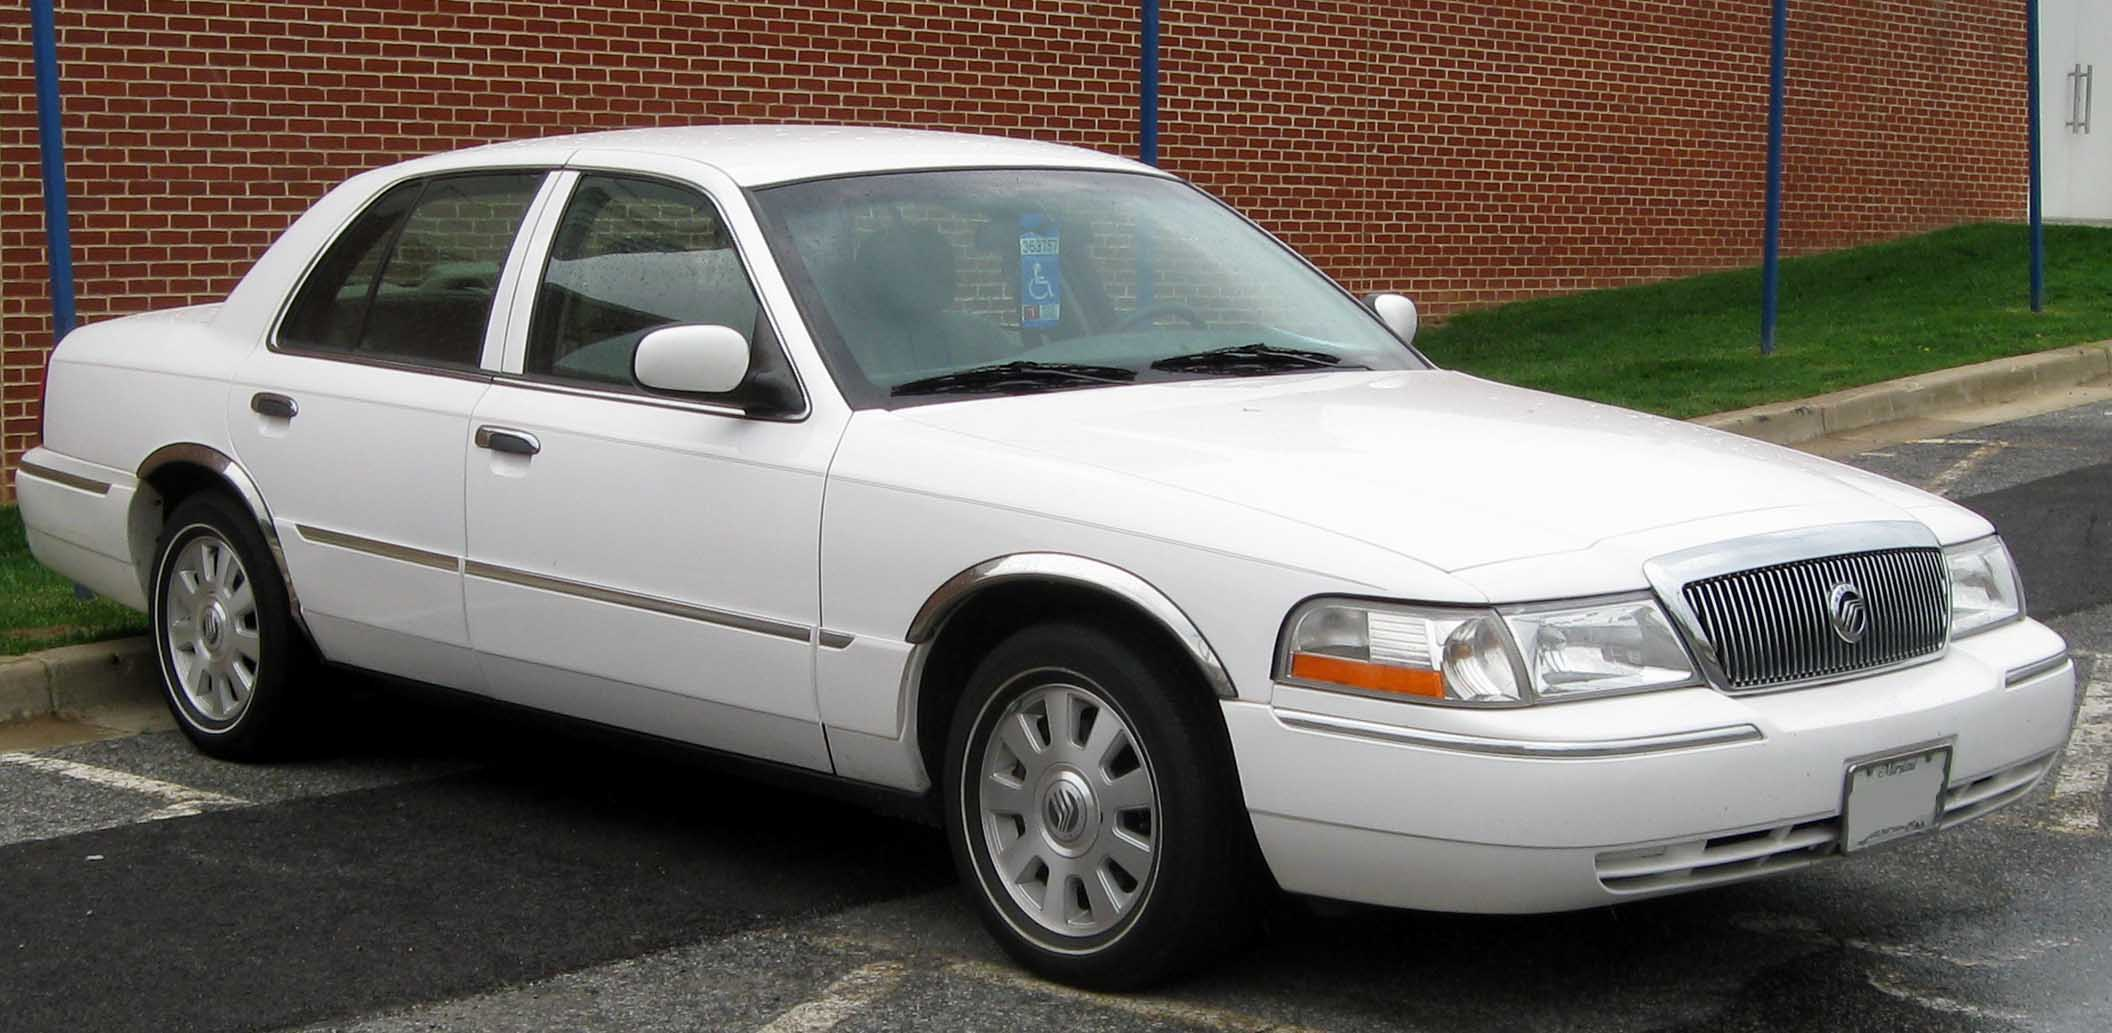 2007 Mercury Grand Marquis #8